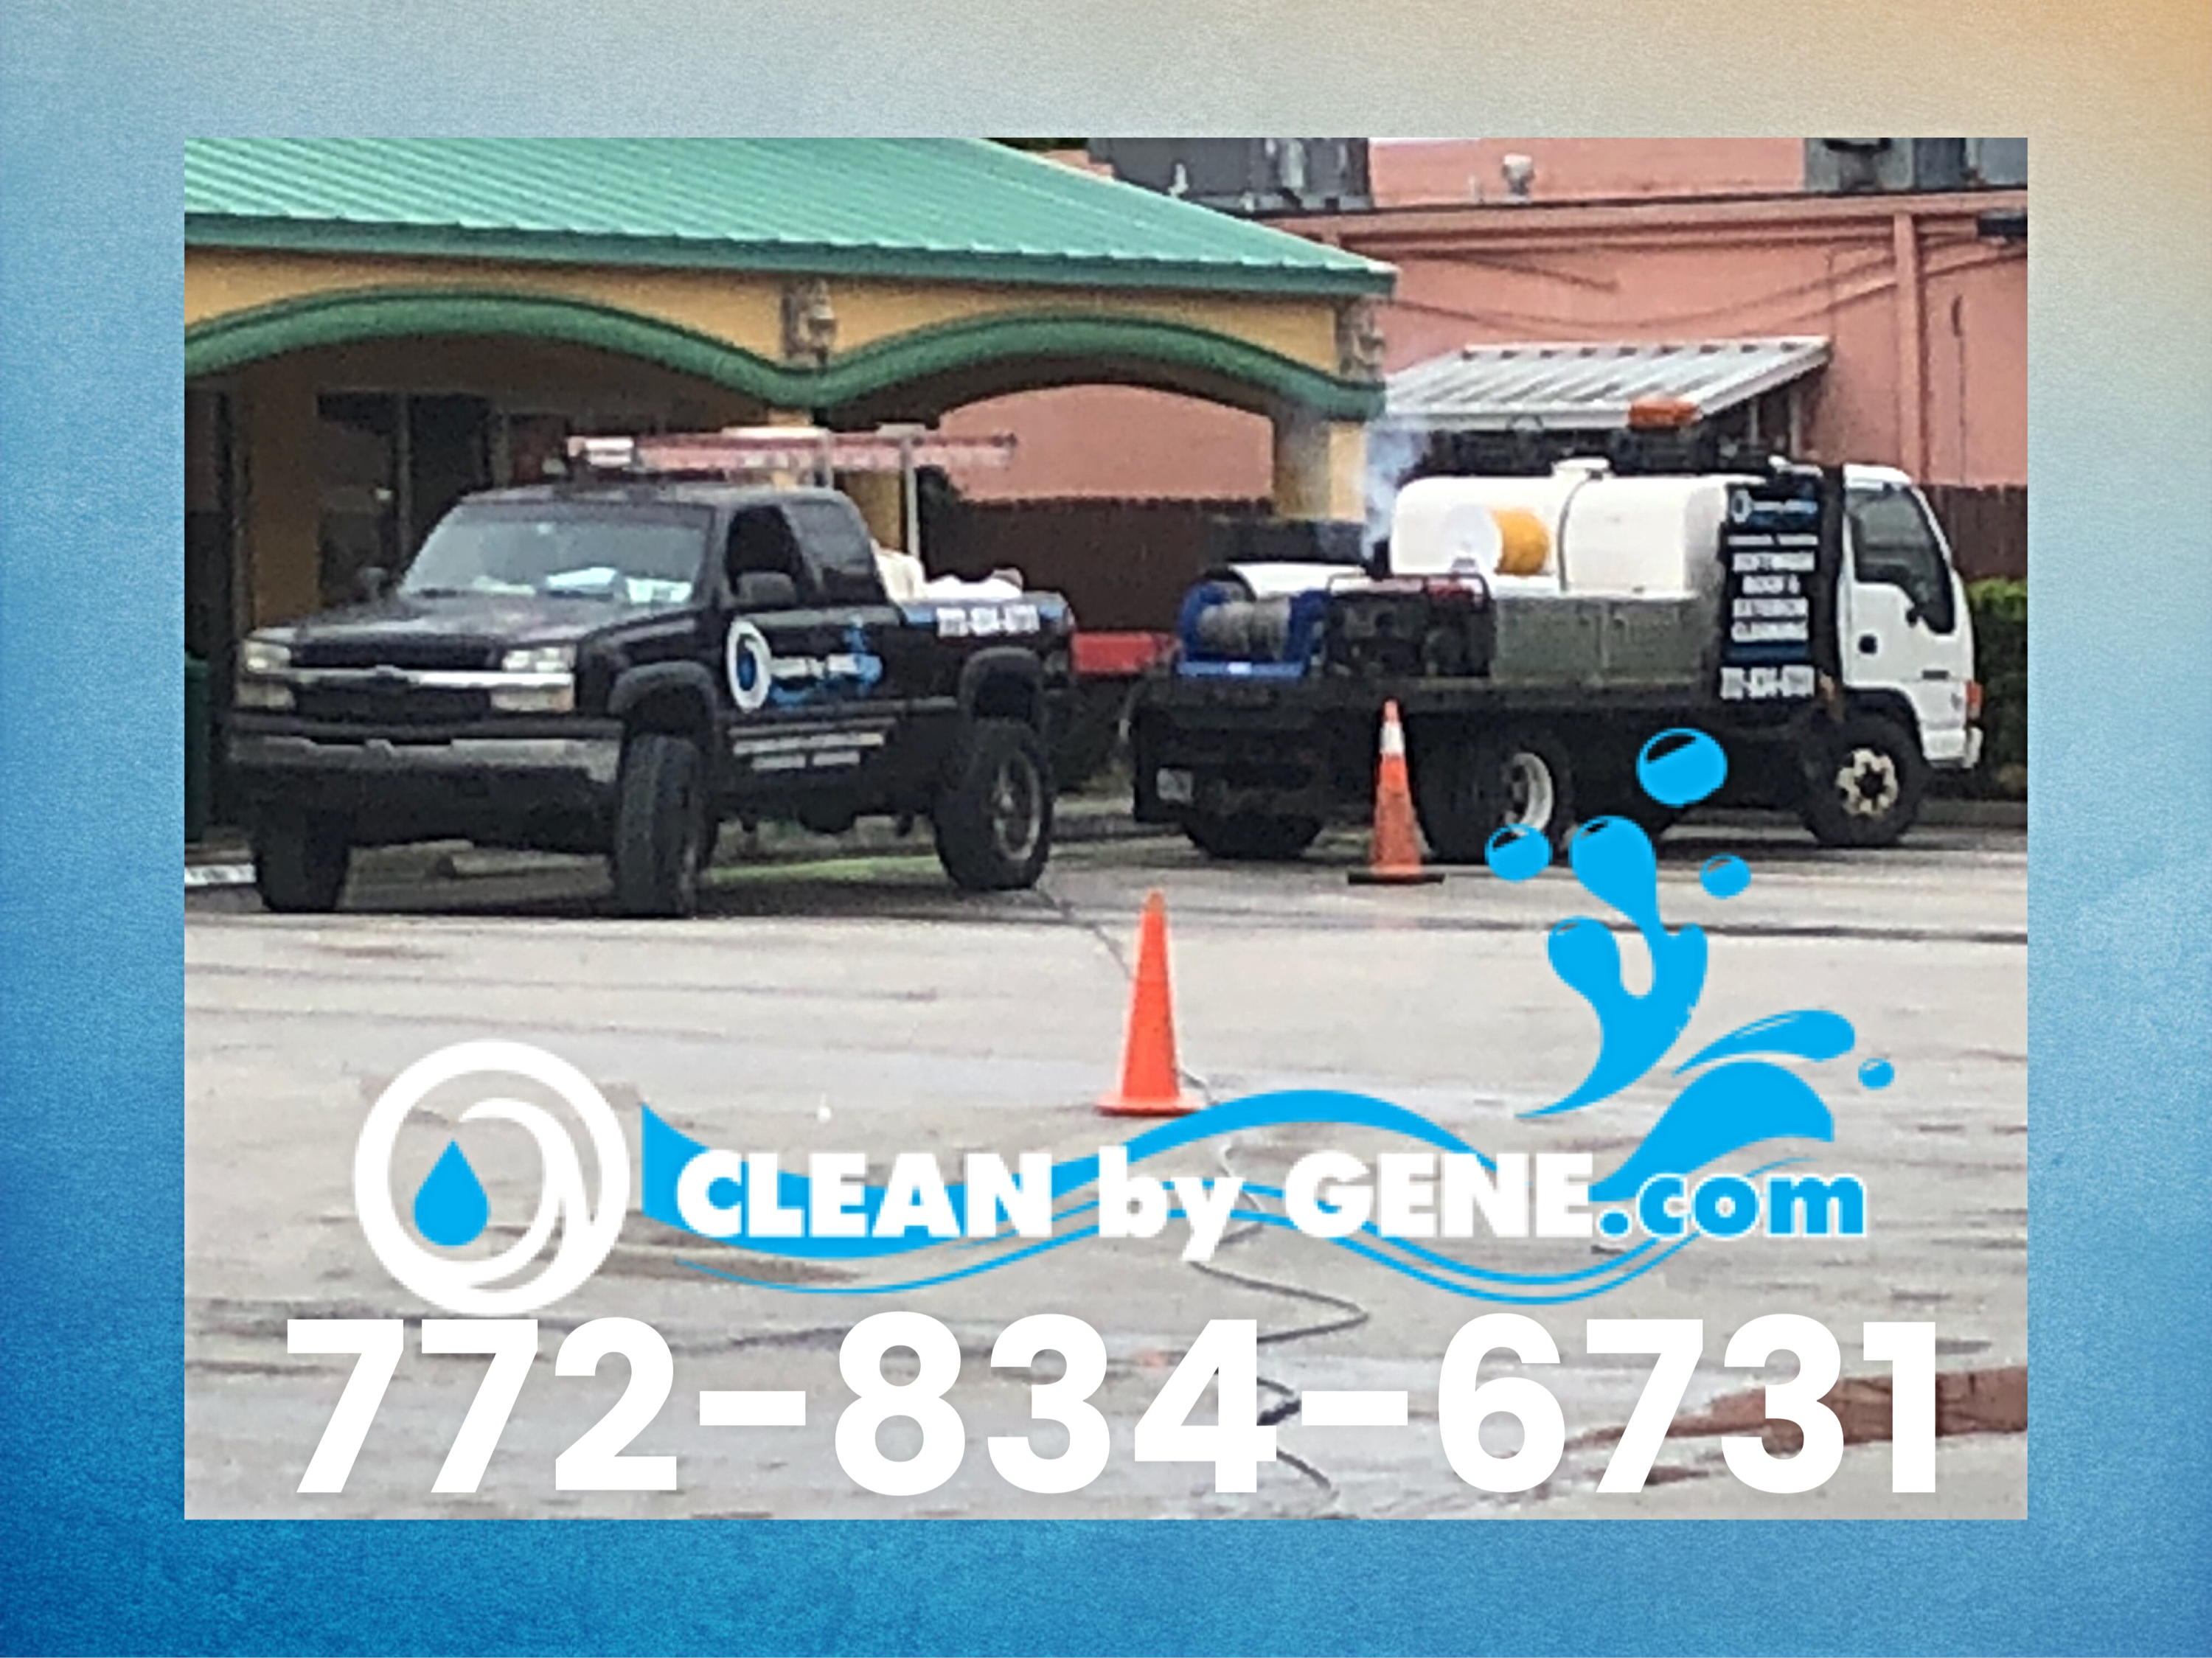 Clean by Gene • SoftWash Roof & Exterior Cleaning•Palm City, Florida